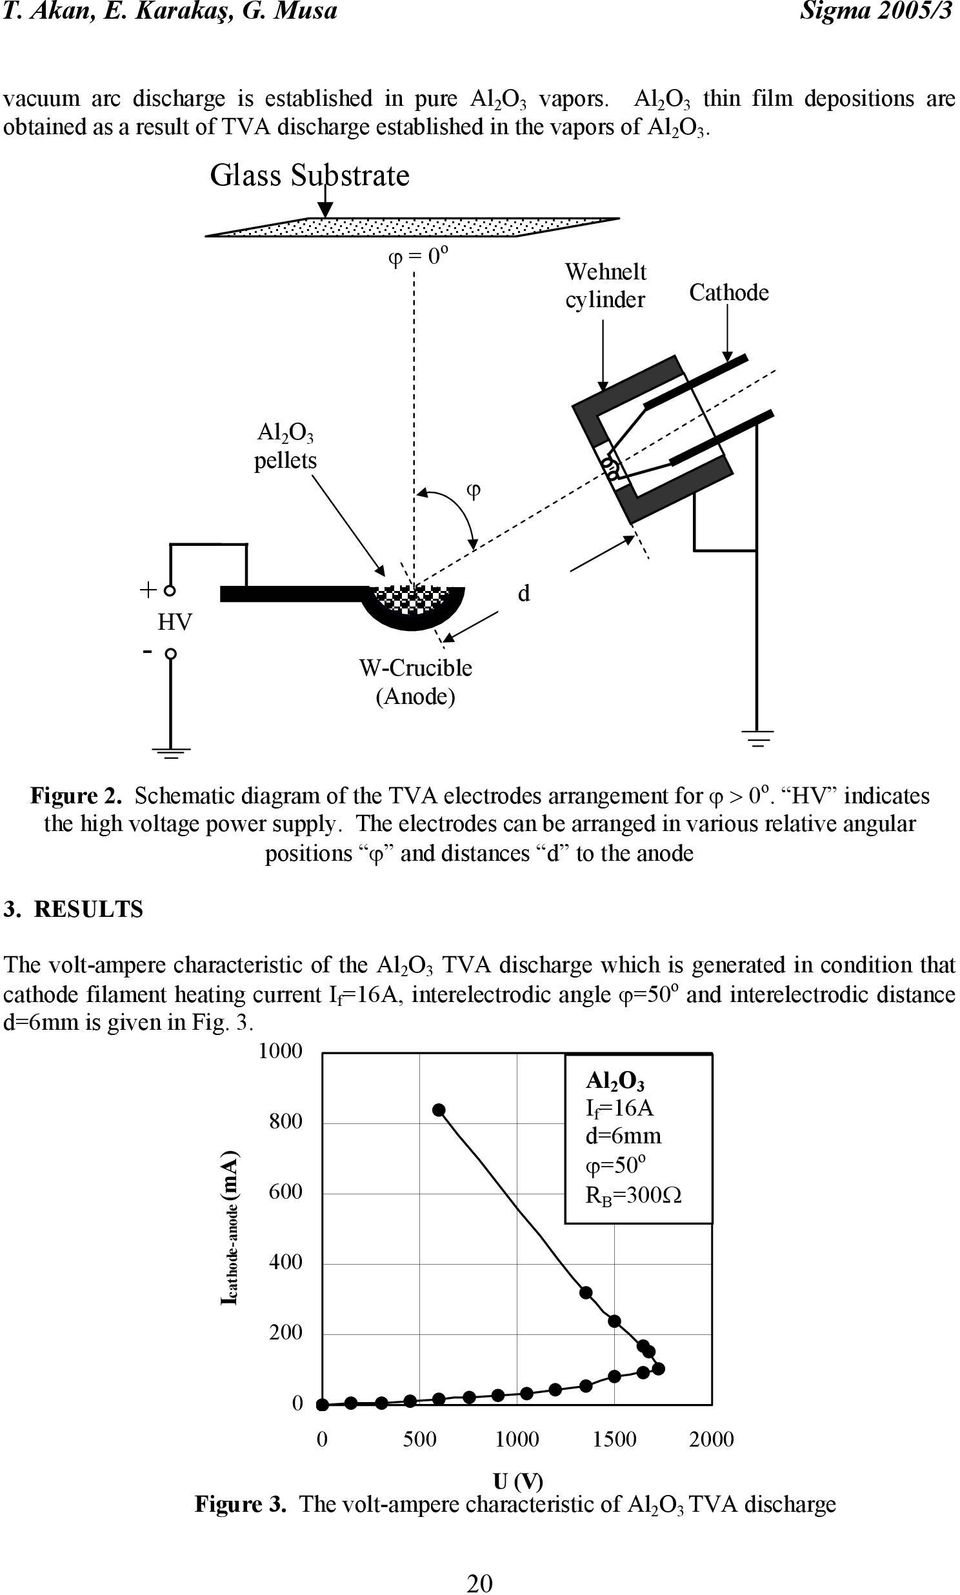 Glass Substrate ϕ = 0 o Wehnelt cylinder Cathode Al 2 O 3 pellets ϕ + HV - W-Crucible (Anode) d Figure 2. Schematic diagram of the TVA electrodes arrangement for ϕ > 0 o.